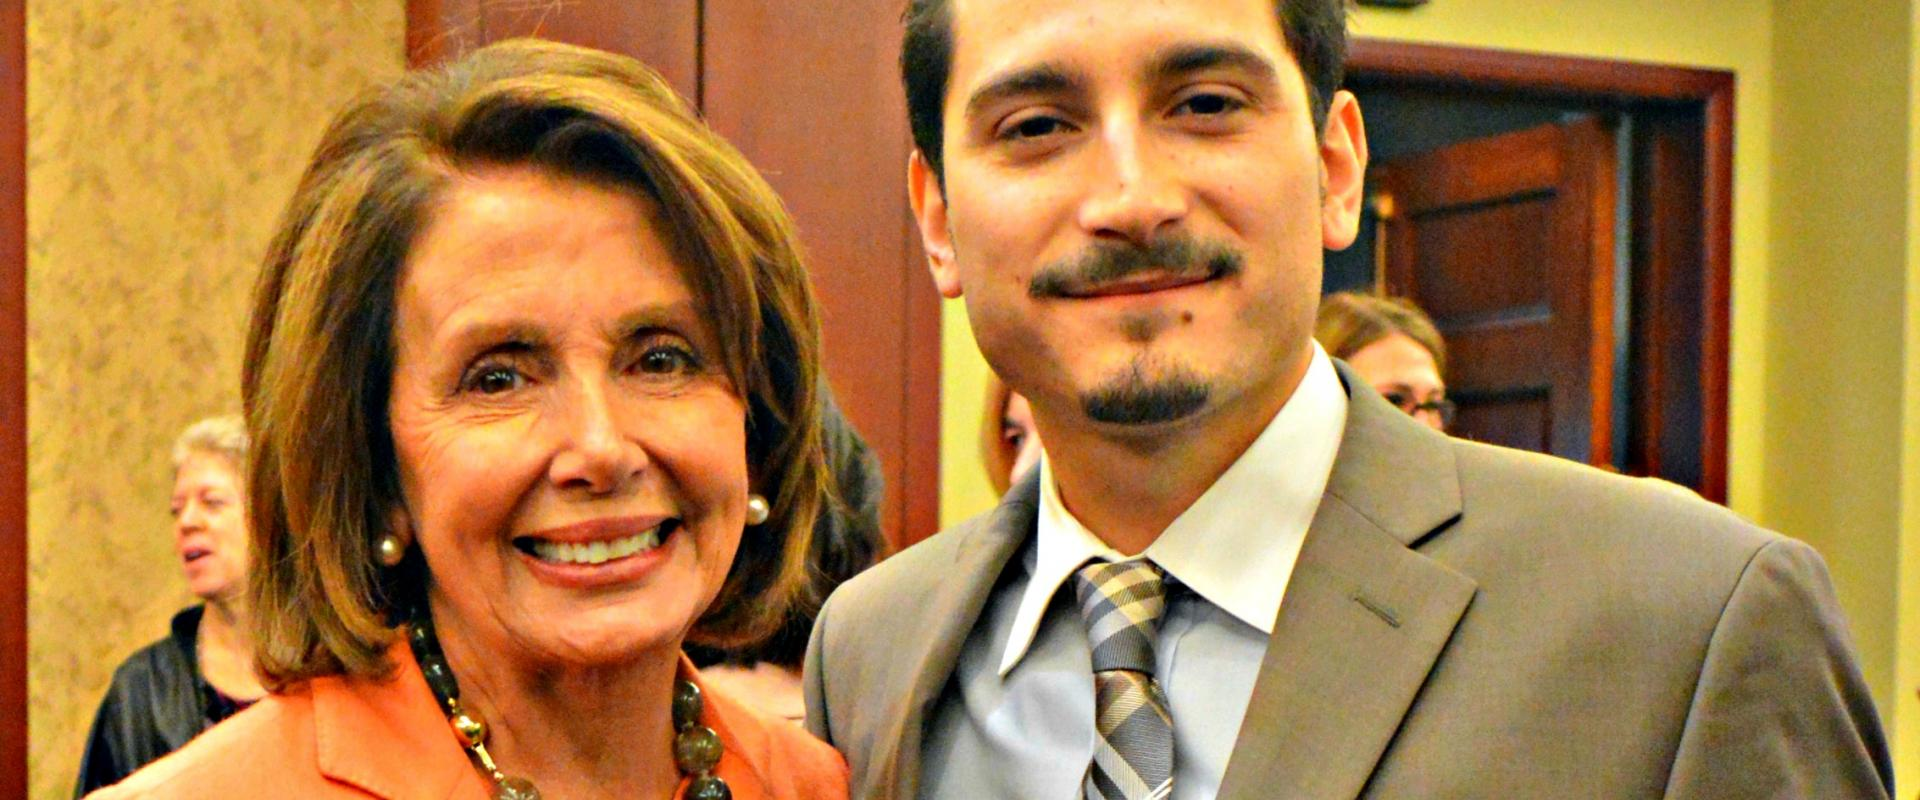 """Congresswoman Pelosi thanks her witness, San Franciscan Maverick Bishop, for his courageous testimony on overcoming adversity and severe economic barriers at a hearing on """"The Failure of Trickle Down Economics in the War on Poverty."""""""